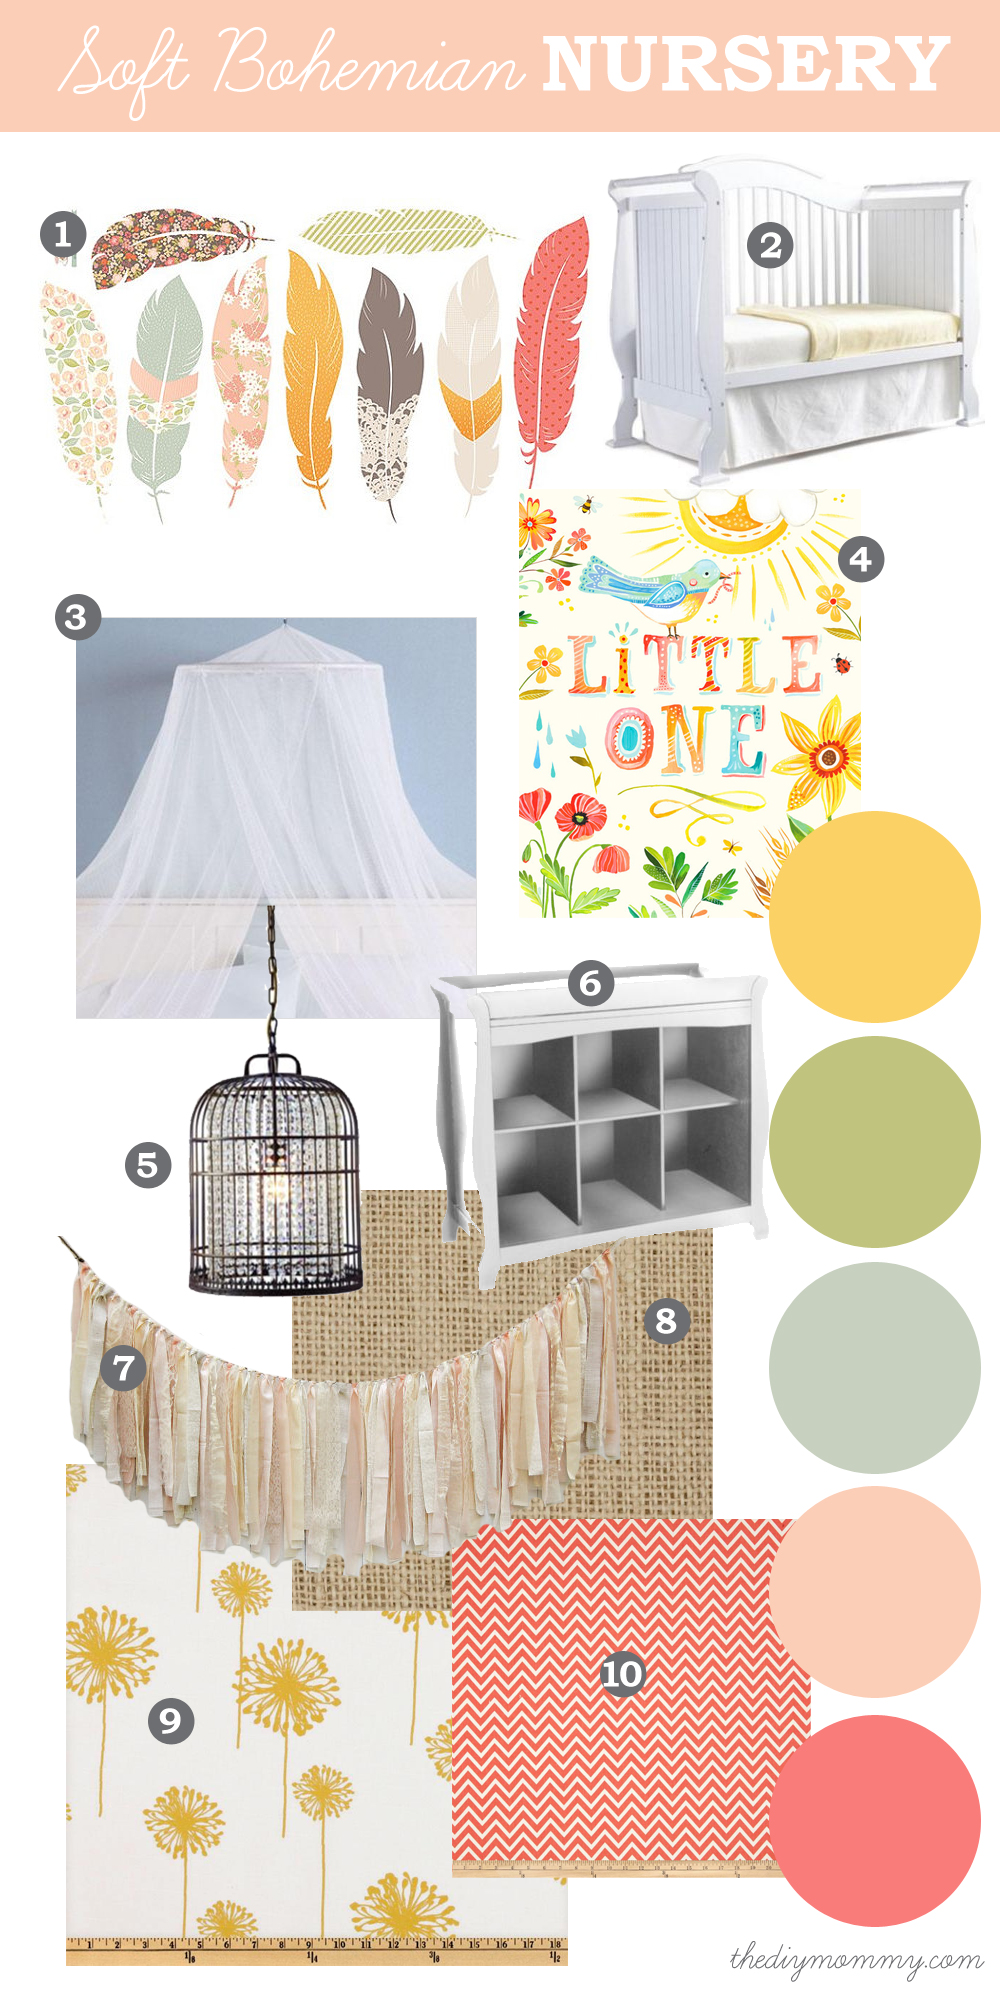 pallet ceiling ideas - Mood Board A Soft Bohemian Nursery Baby Days at Sears